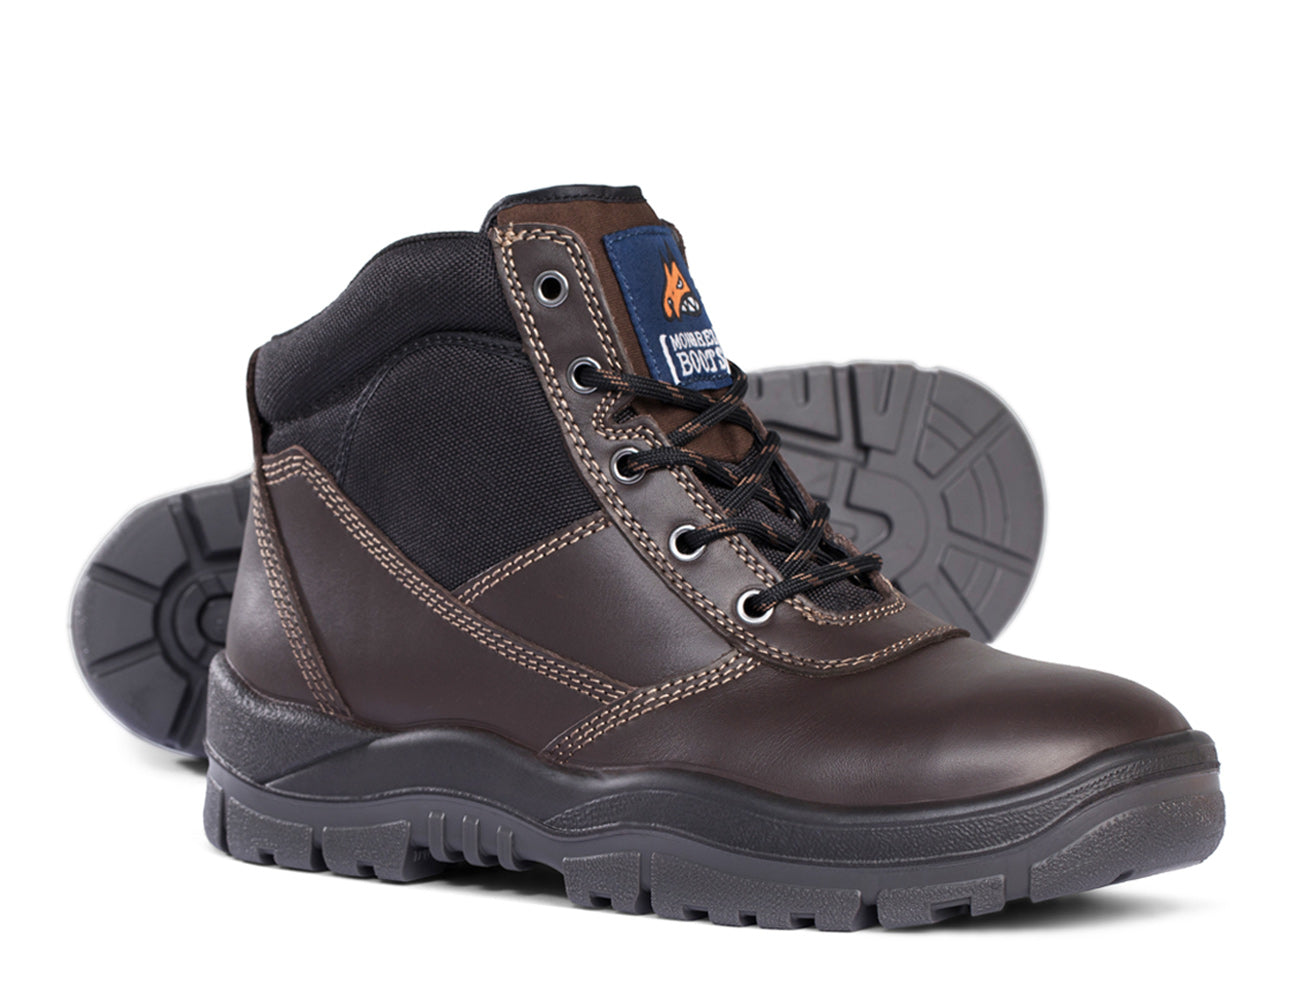 Mongrel Lace Up Safety Boots - 260030